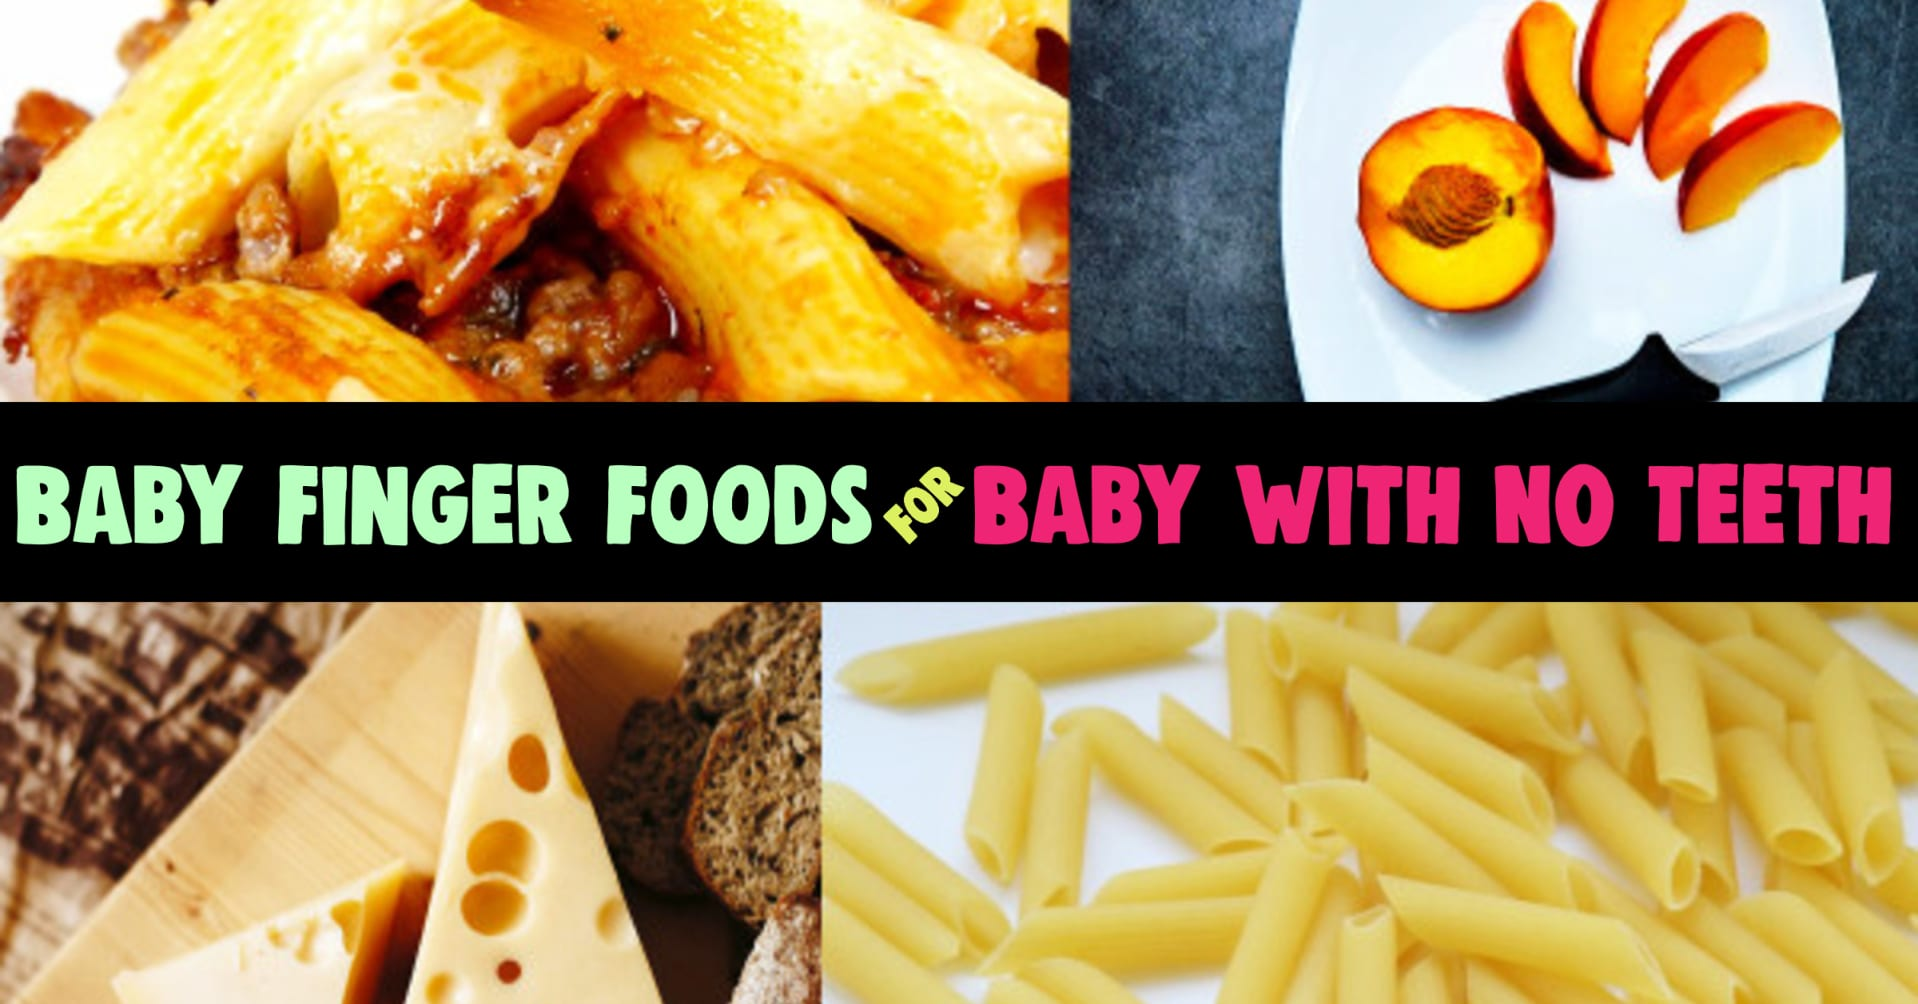 Baby Finger Foods! Finger foods for baby with no teeth - 11 month old baby food list and 10 month old baby food recipes. Baby finger foods 10 months, 7 months, 6 months or for any baby without teeth yet to chew. Easy baby meals and finger foods!